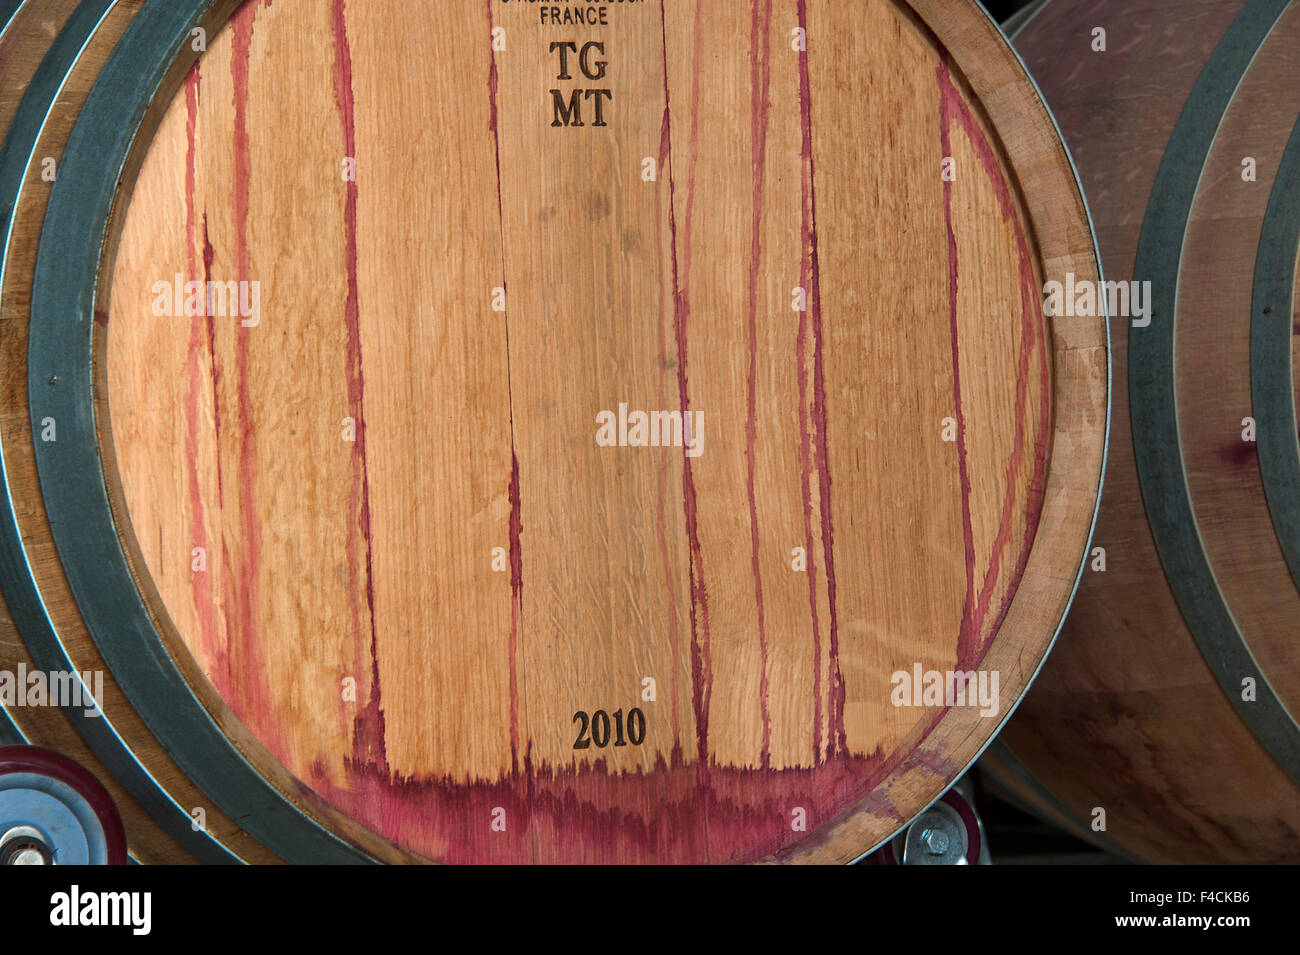 China, Ningxia. Red wine stains the end of an oak barrel at Helan Mountain winery. - Stock Image